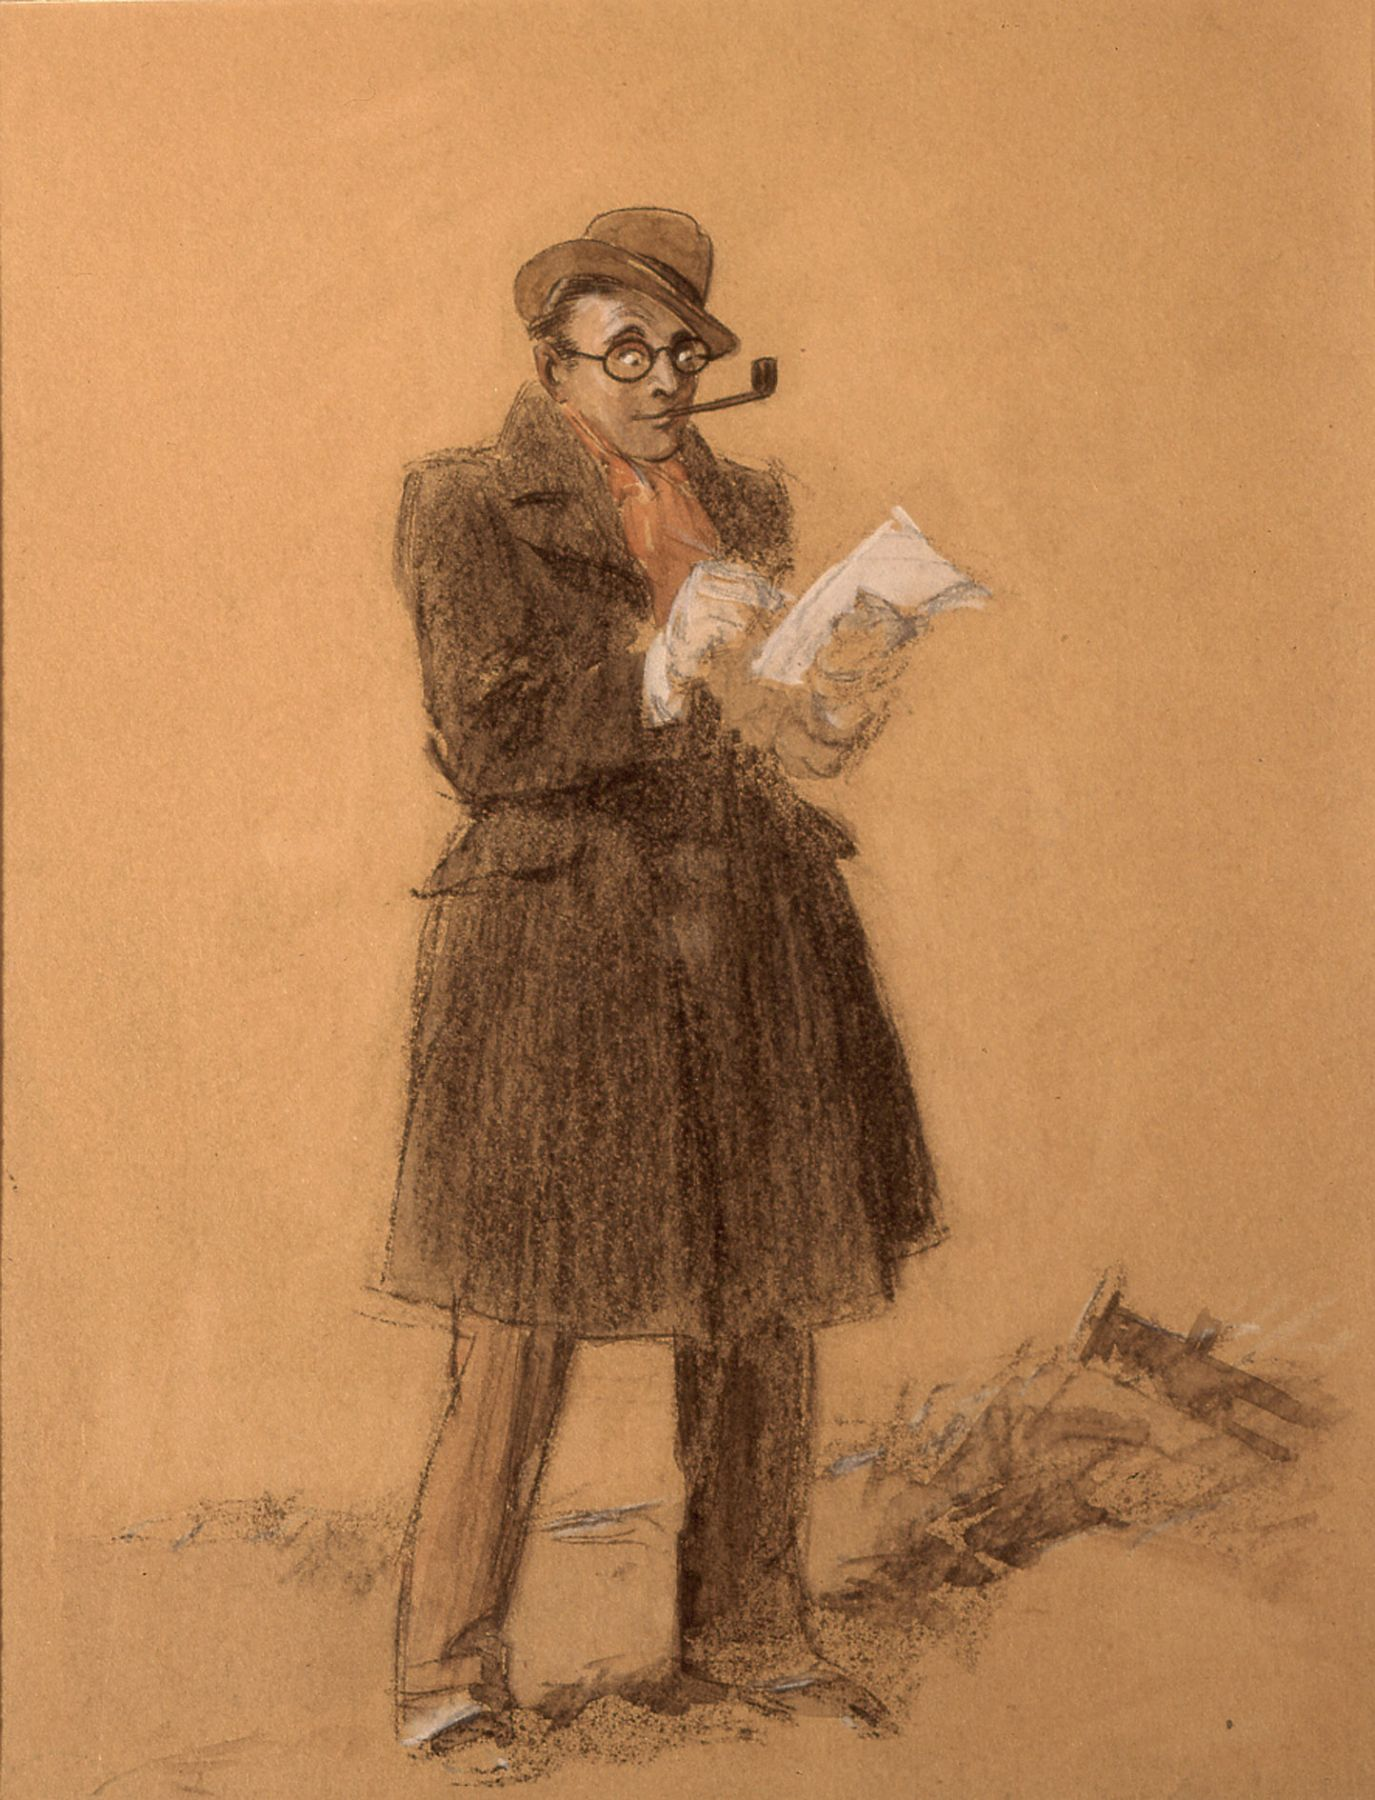 Everett Shinn, The Reporter (Self-Portrait) (SOLD), black chalk and pastel on tan paper, 10 1/4 x 8 1/2 inches